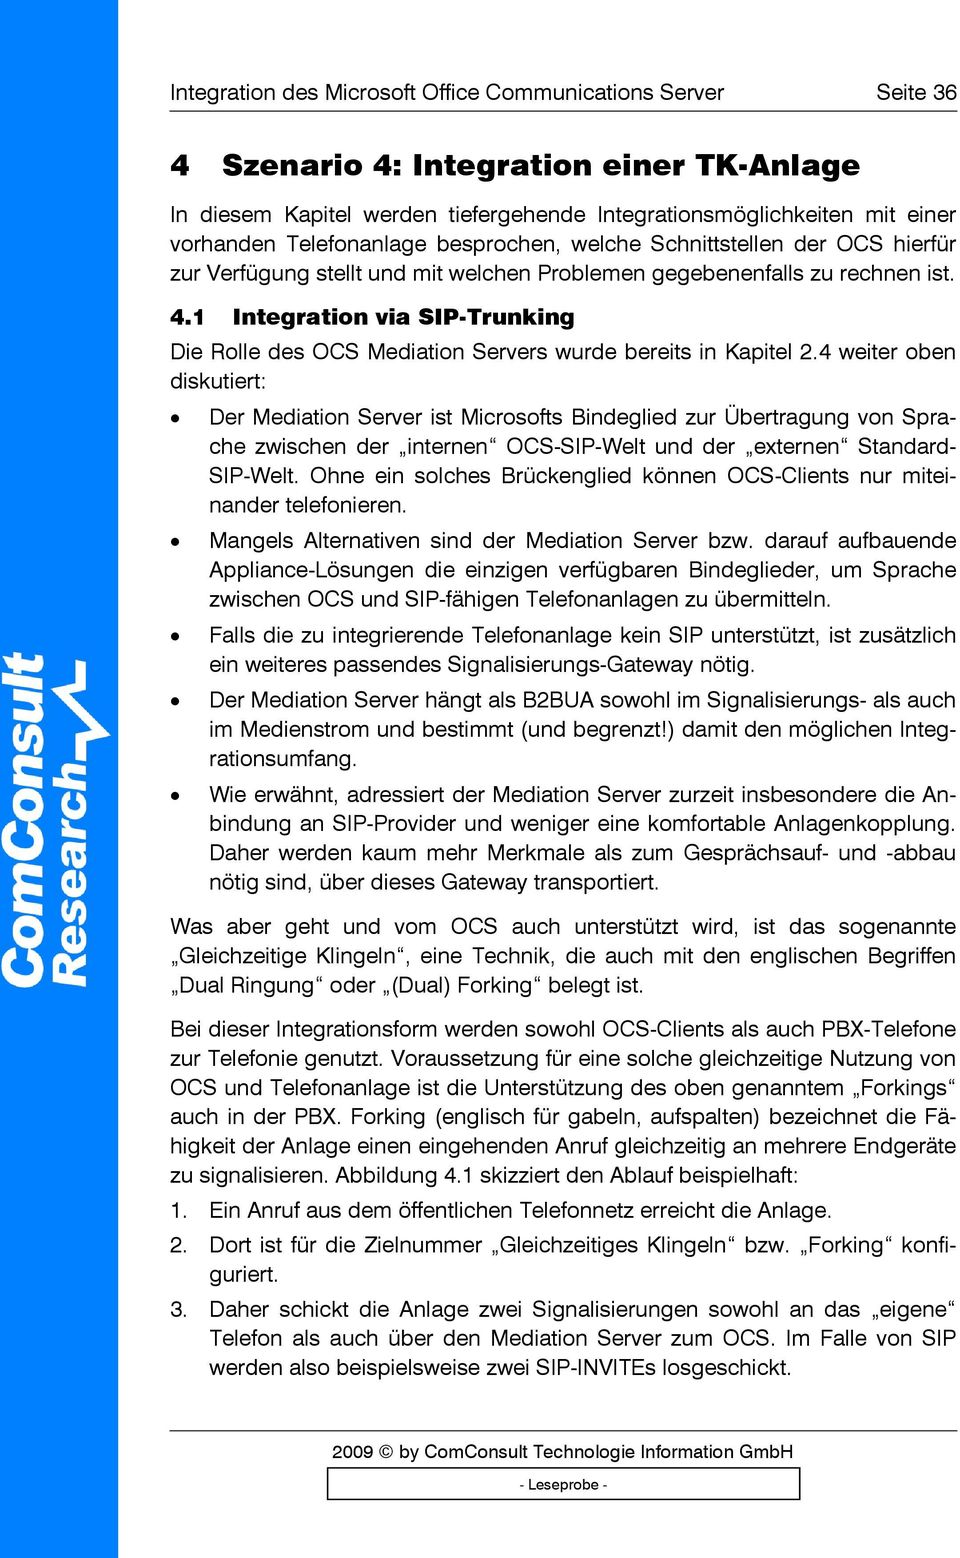 1 Integration via SIP-Trunking Die Rolle des OCS Mediation Servers wurde bereits in Kapitel 2.